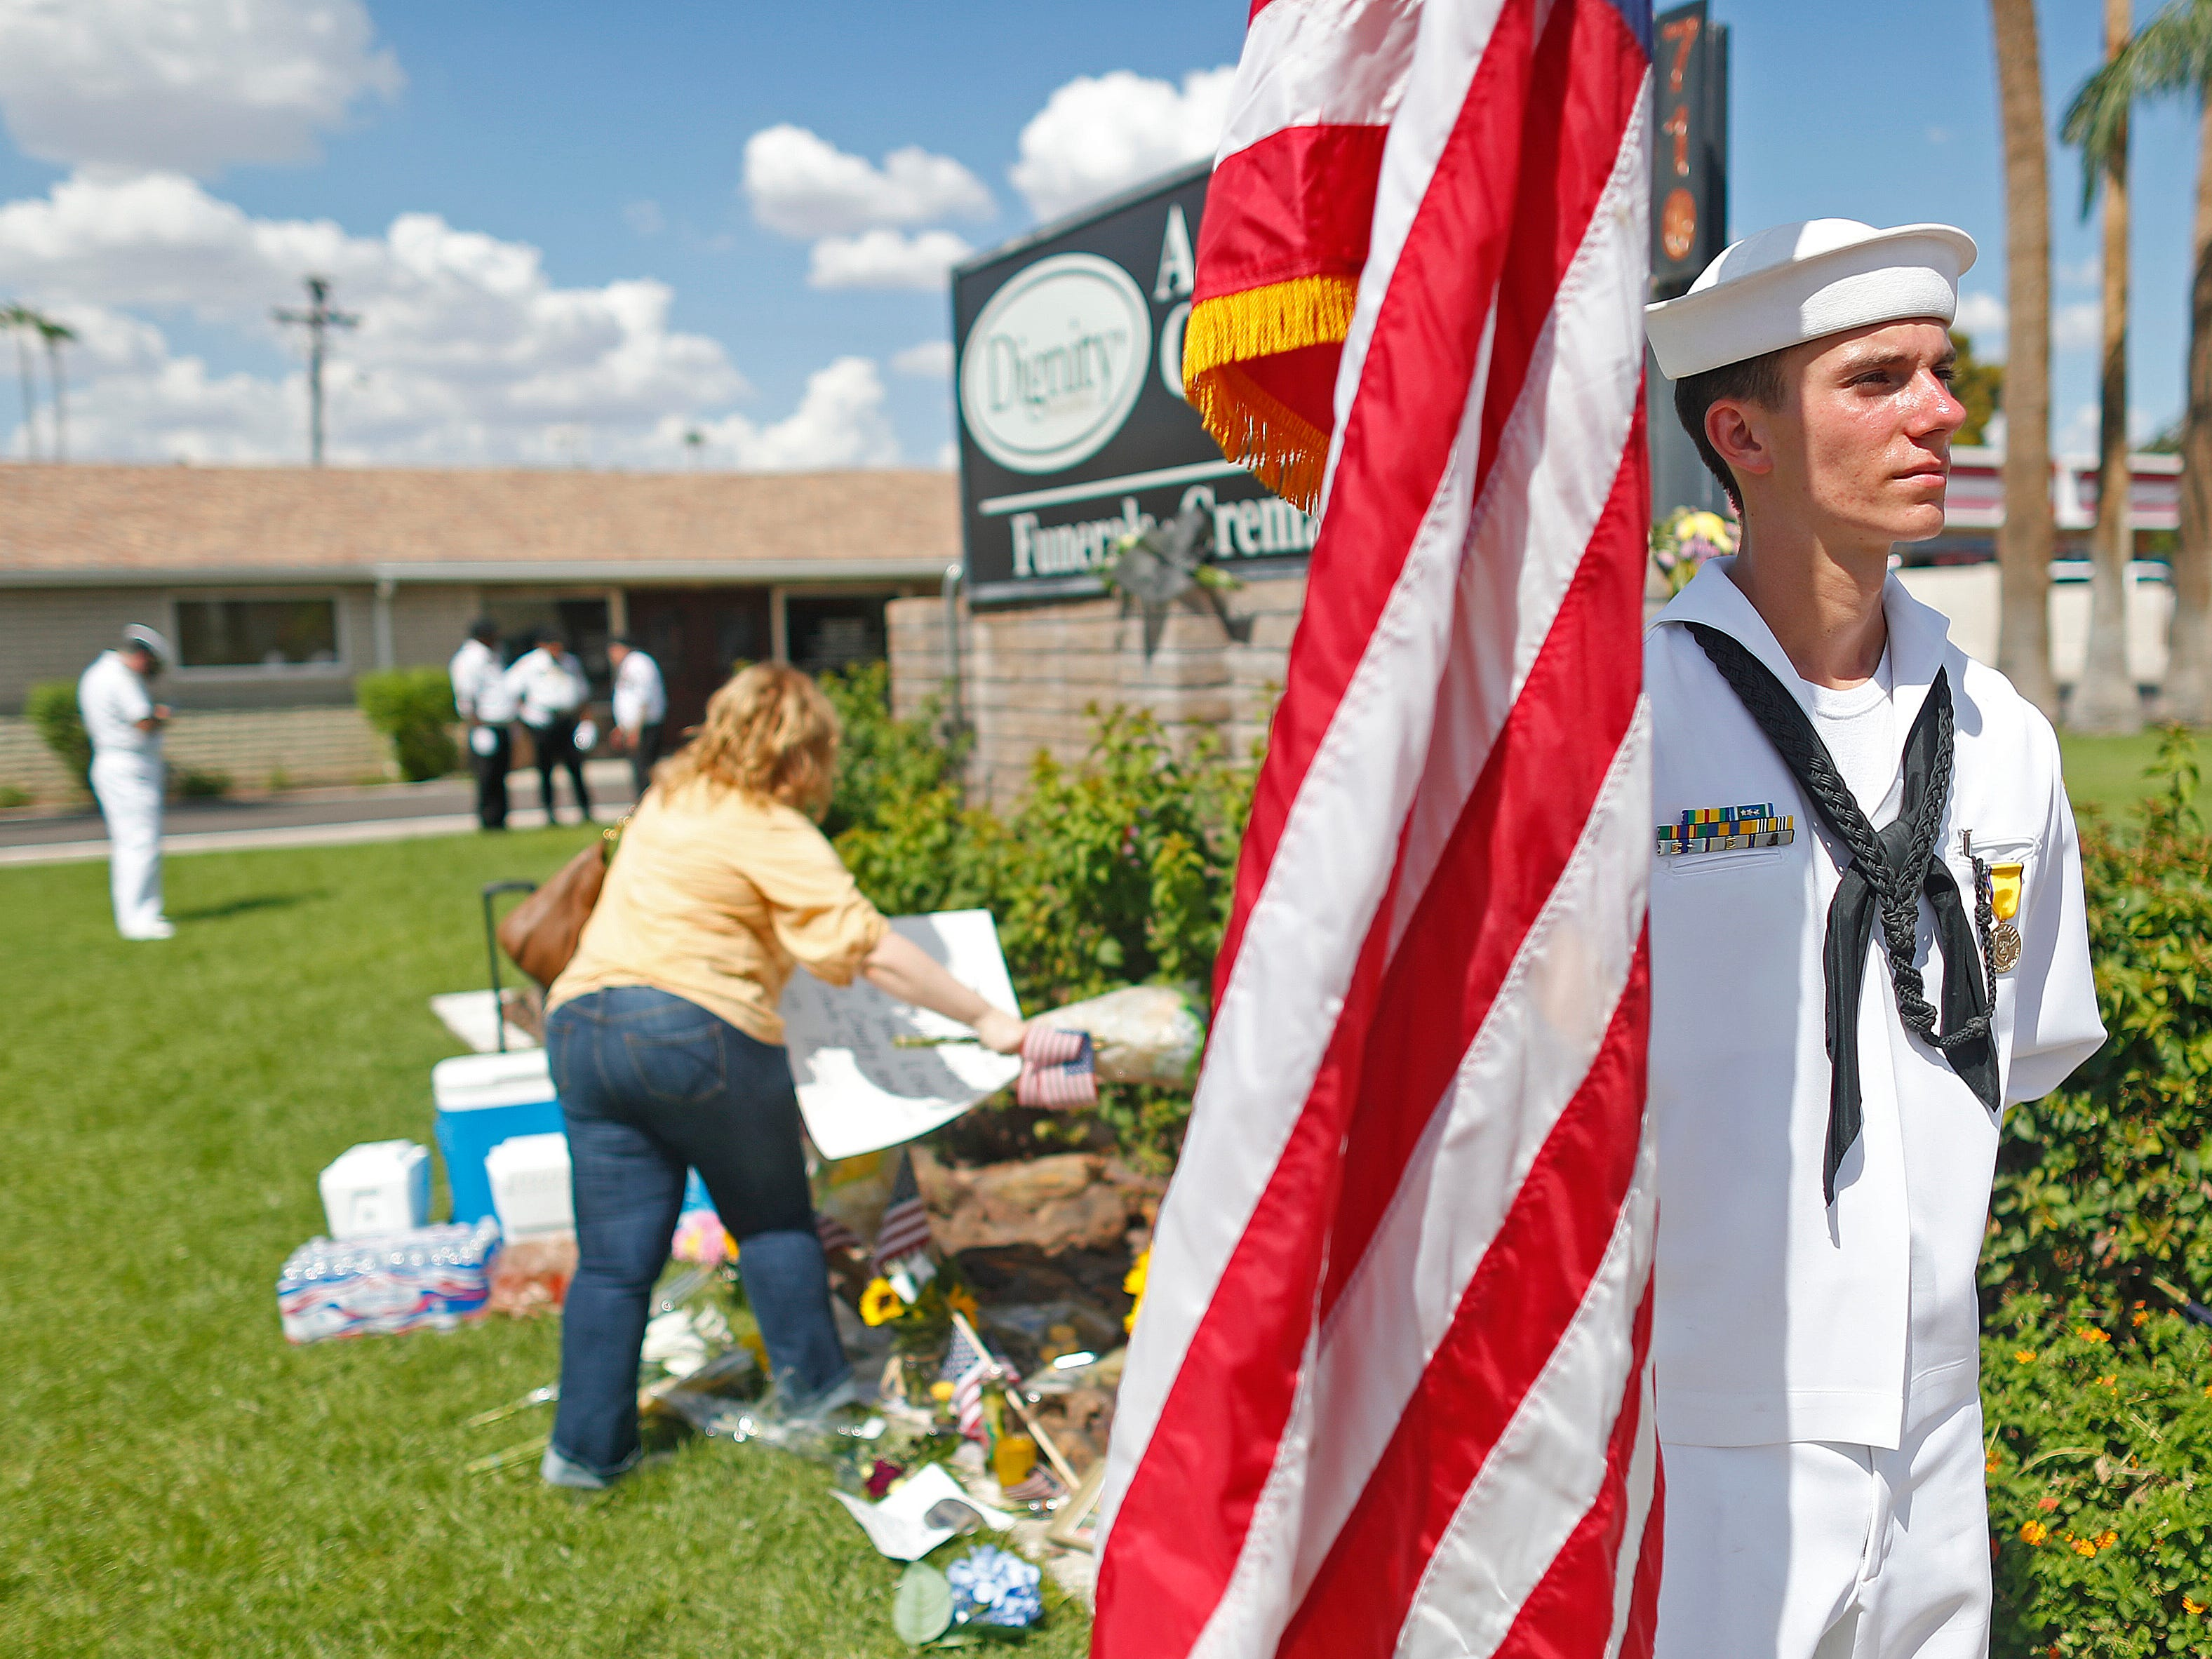 Petty officer third class Kyle Vonnahme (USNSCC) holds an American flag in the heat as people come to honor Sen. John McCain outside A.L Moore-Grimshaw Mortuaries in Phoenix, Ariz. on Aug. 26, 2018.